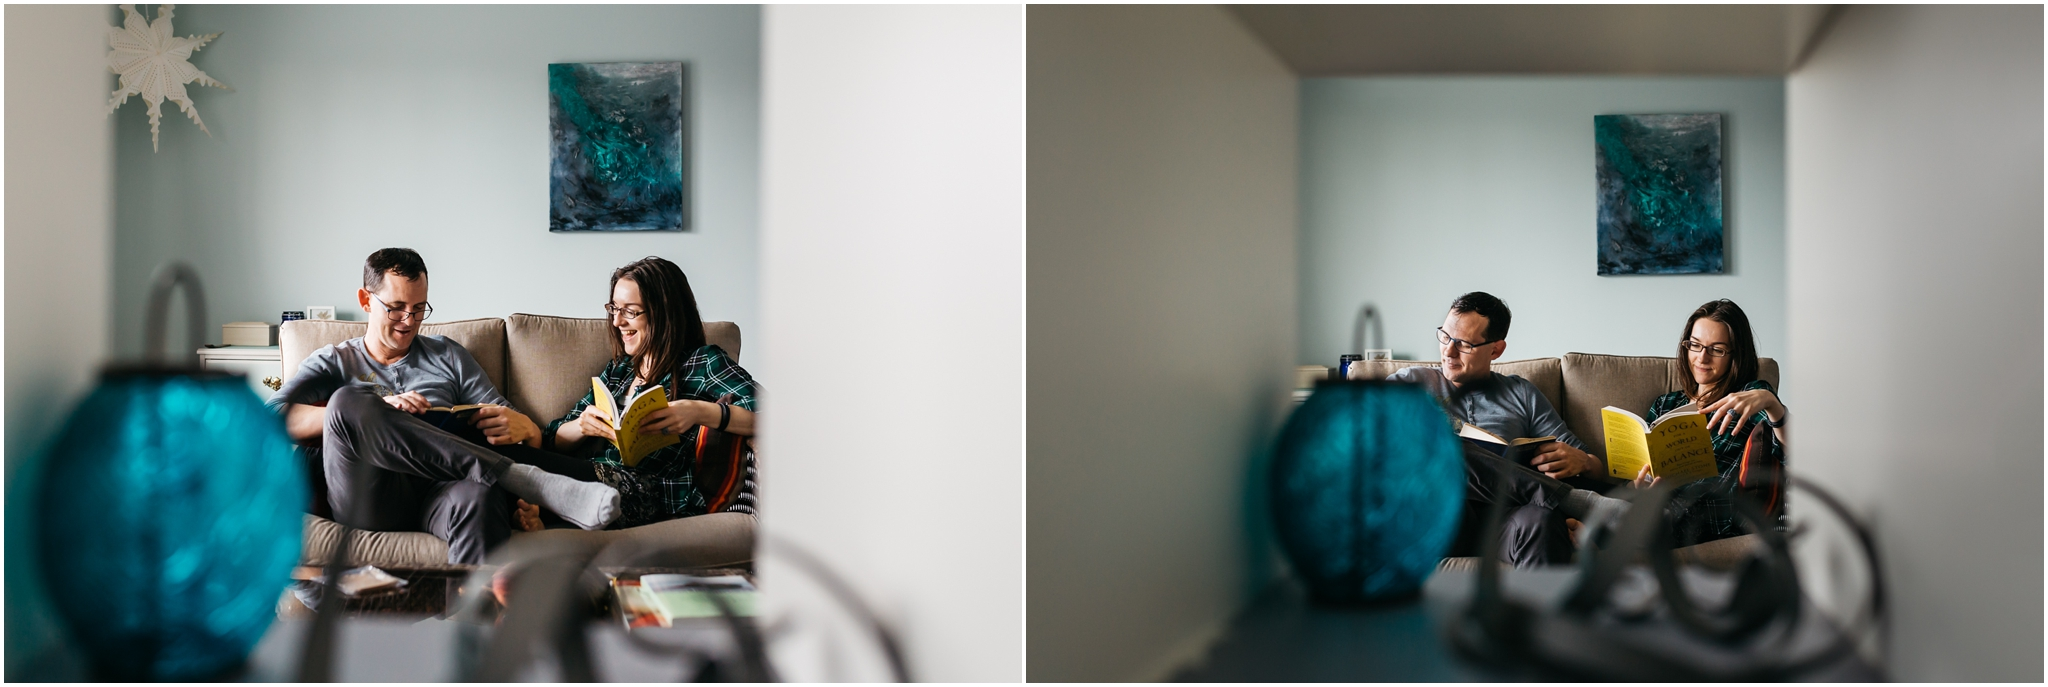 Edmonton couples engagement photographer In home sessions best of 2016 November